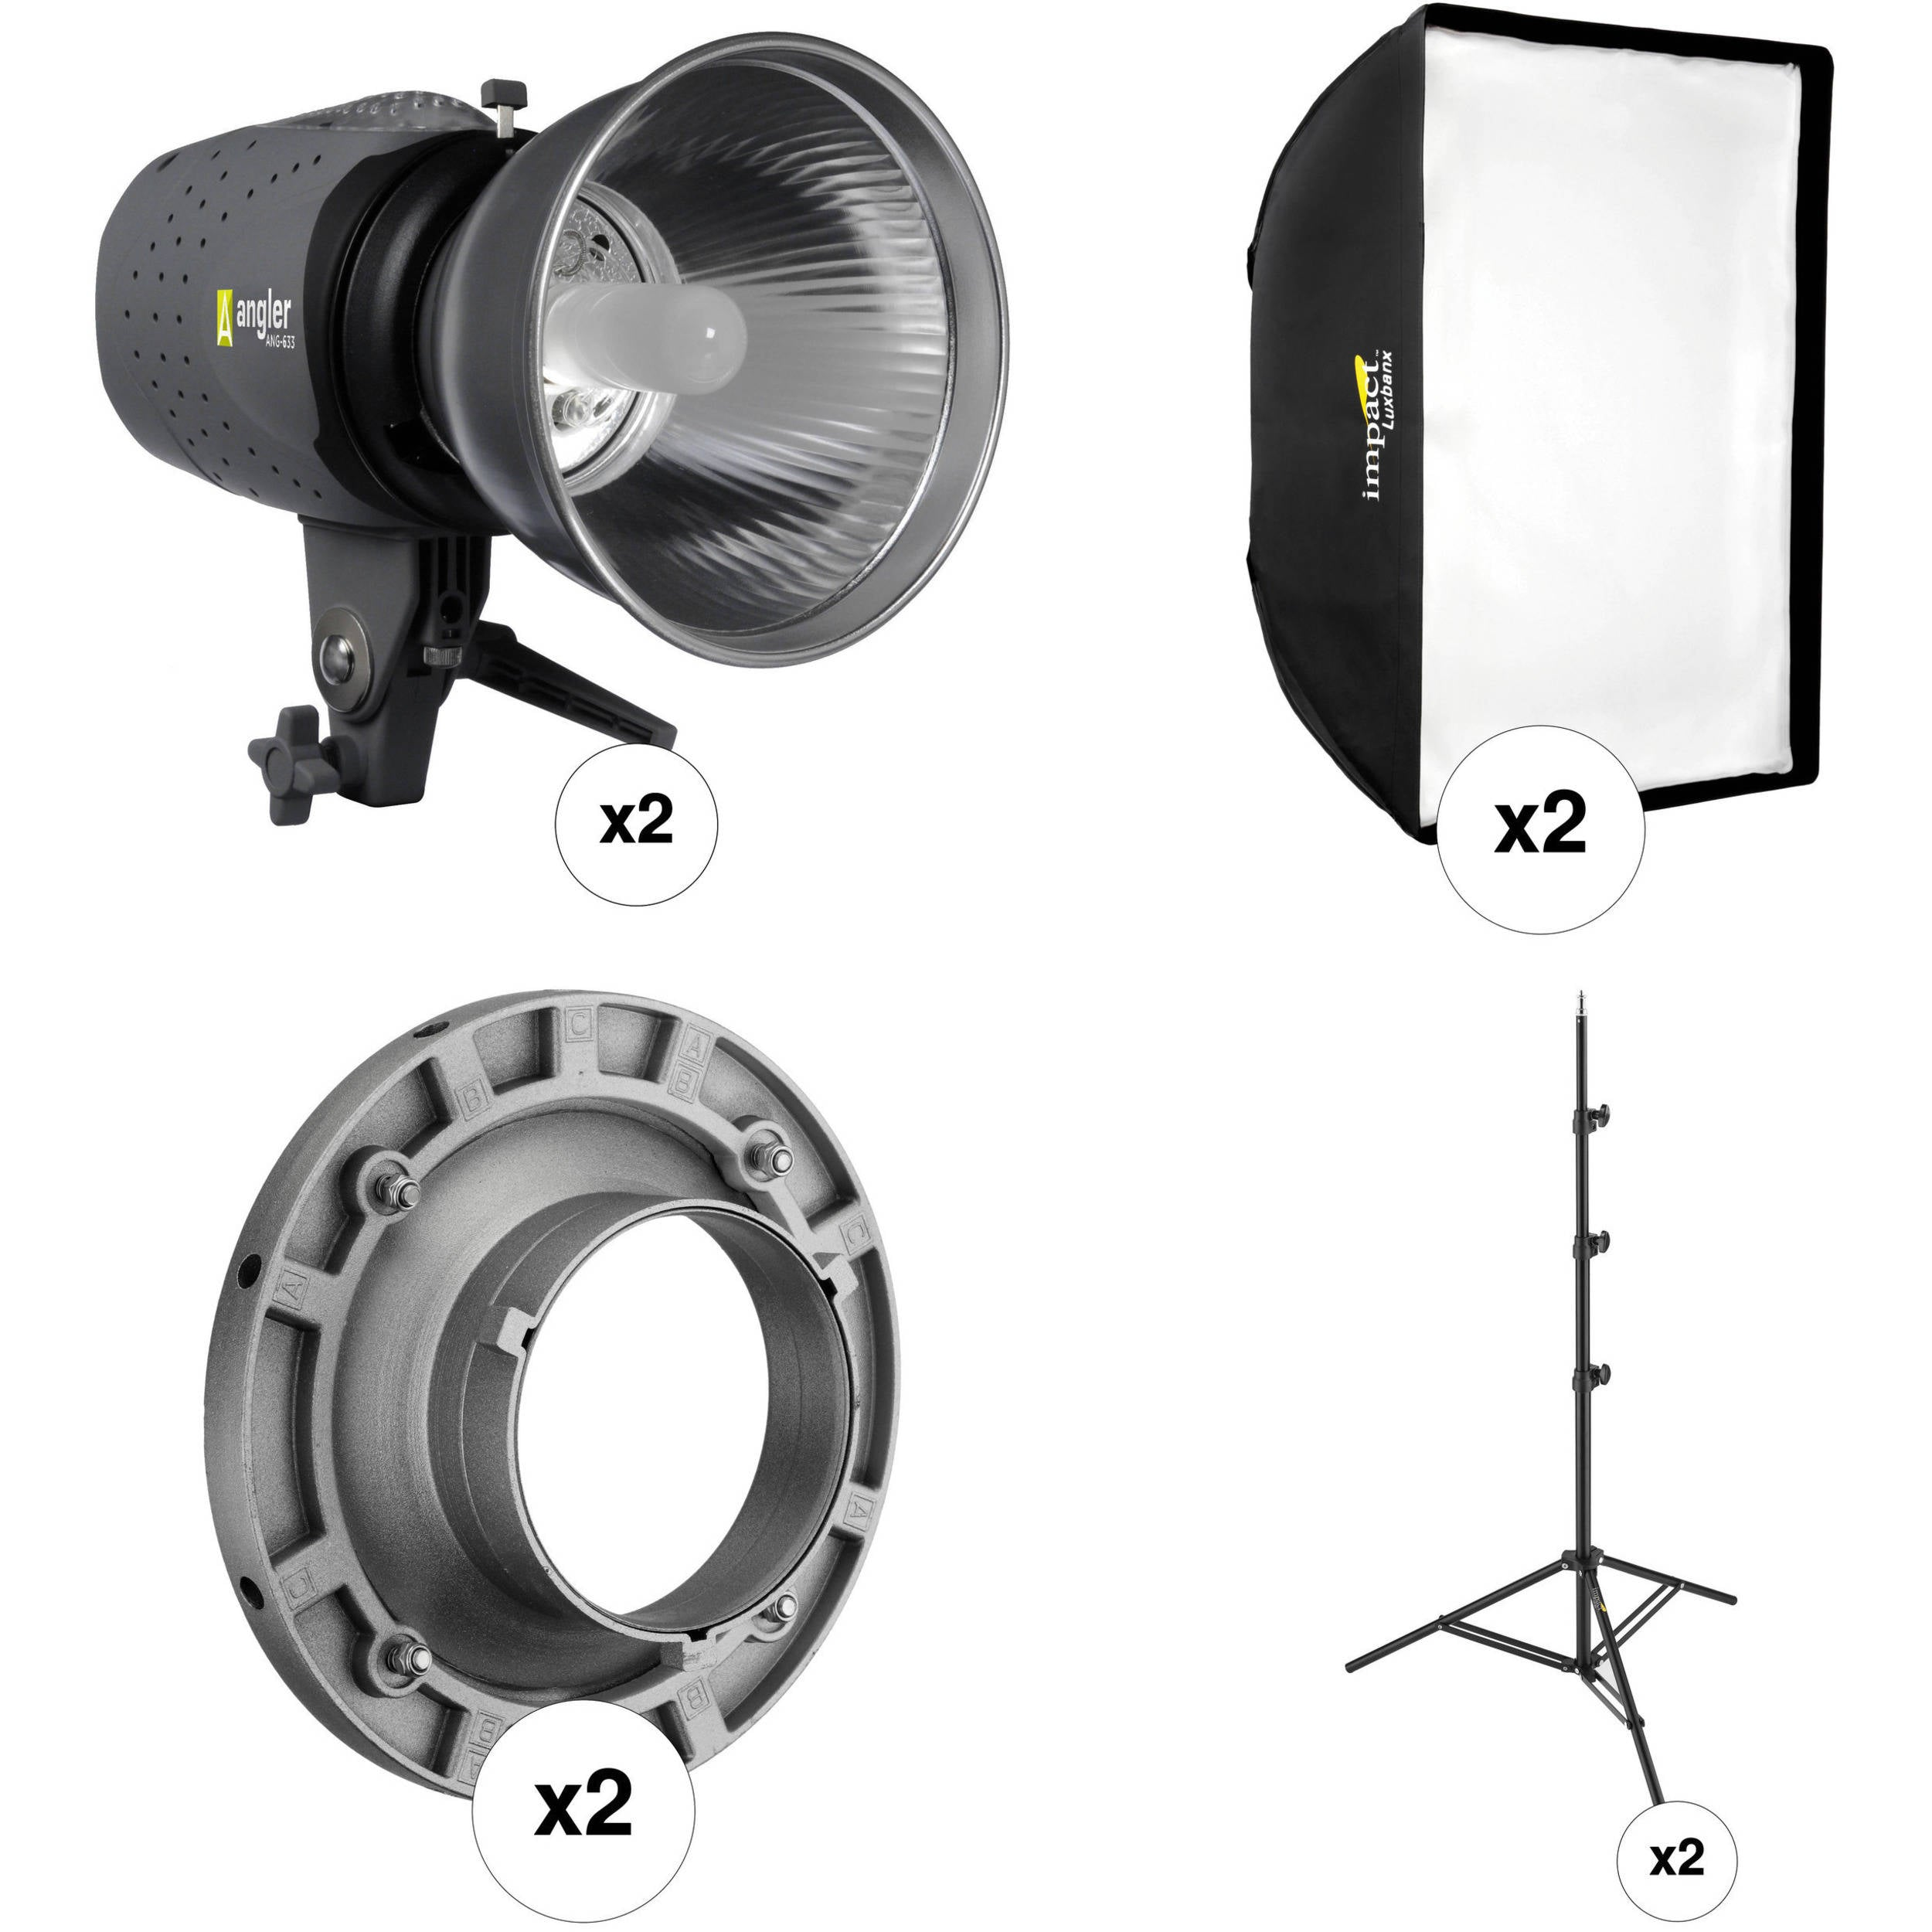 Angler Two Monolight Softbox Kit